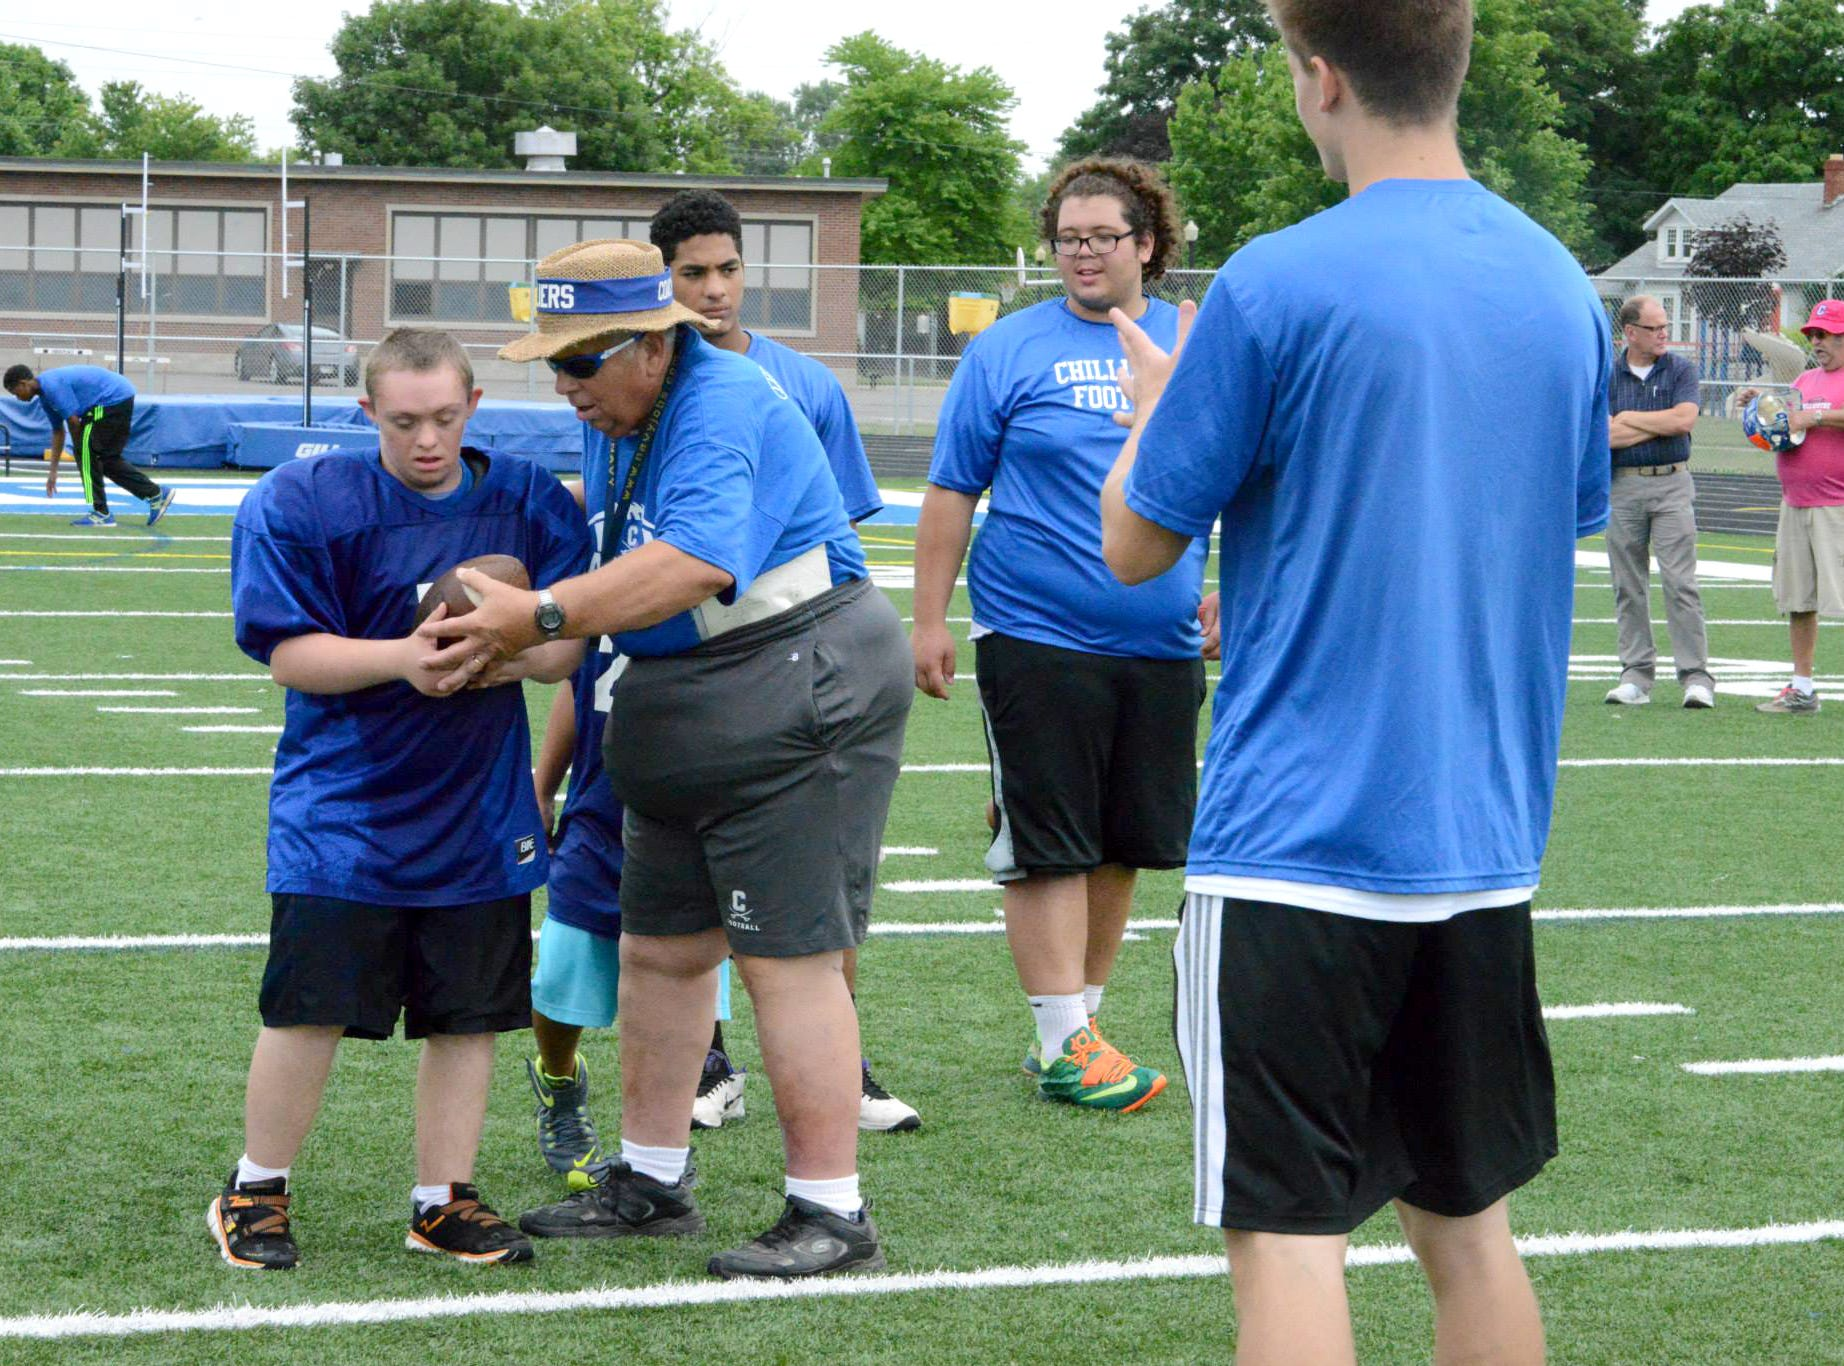 Chillicothe football coach Ron Hinton hands the ball off to Pioneer student Jacob Armstrong, during one of the drills at the Can Do Camp, between the Chillicothe football team and the Pioneer Center, at Herrnstein Field Friday.